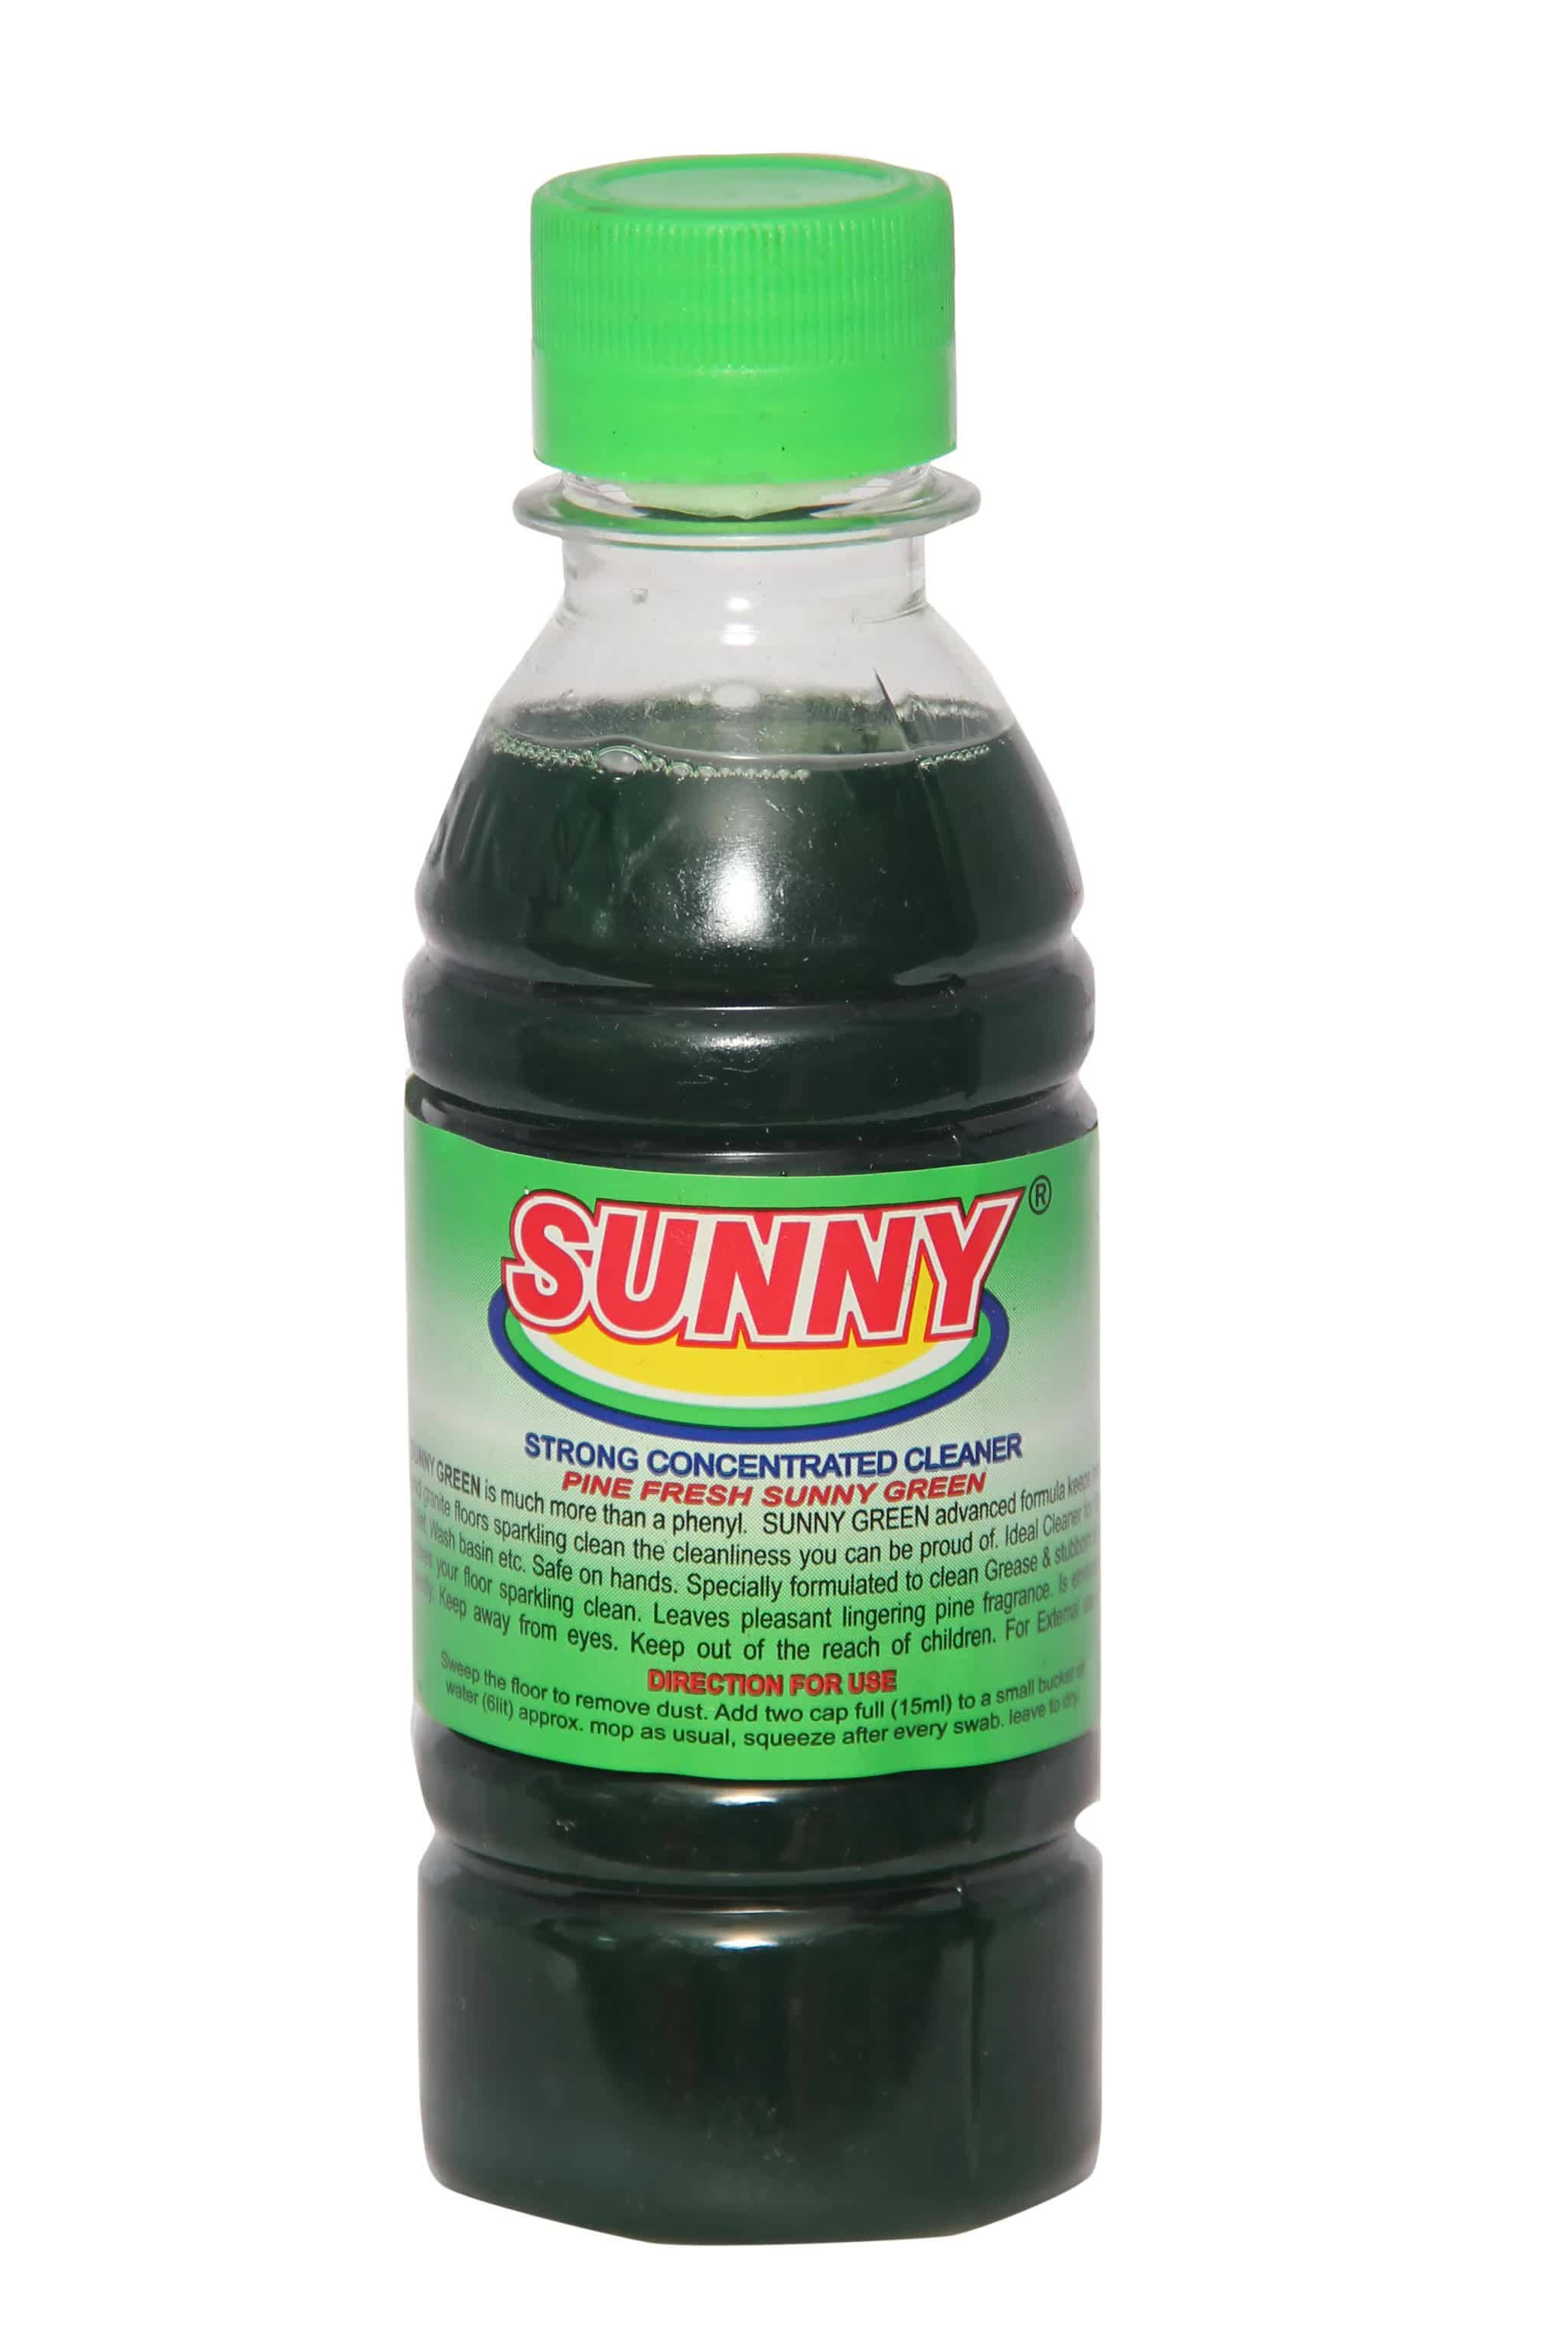 Sunny Pine Fresh Strong Concentrated Cleaner